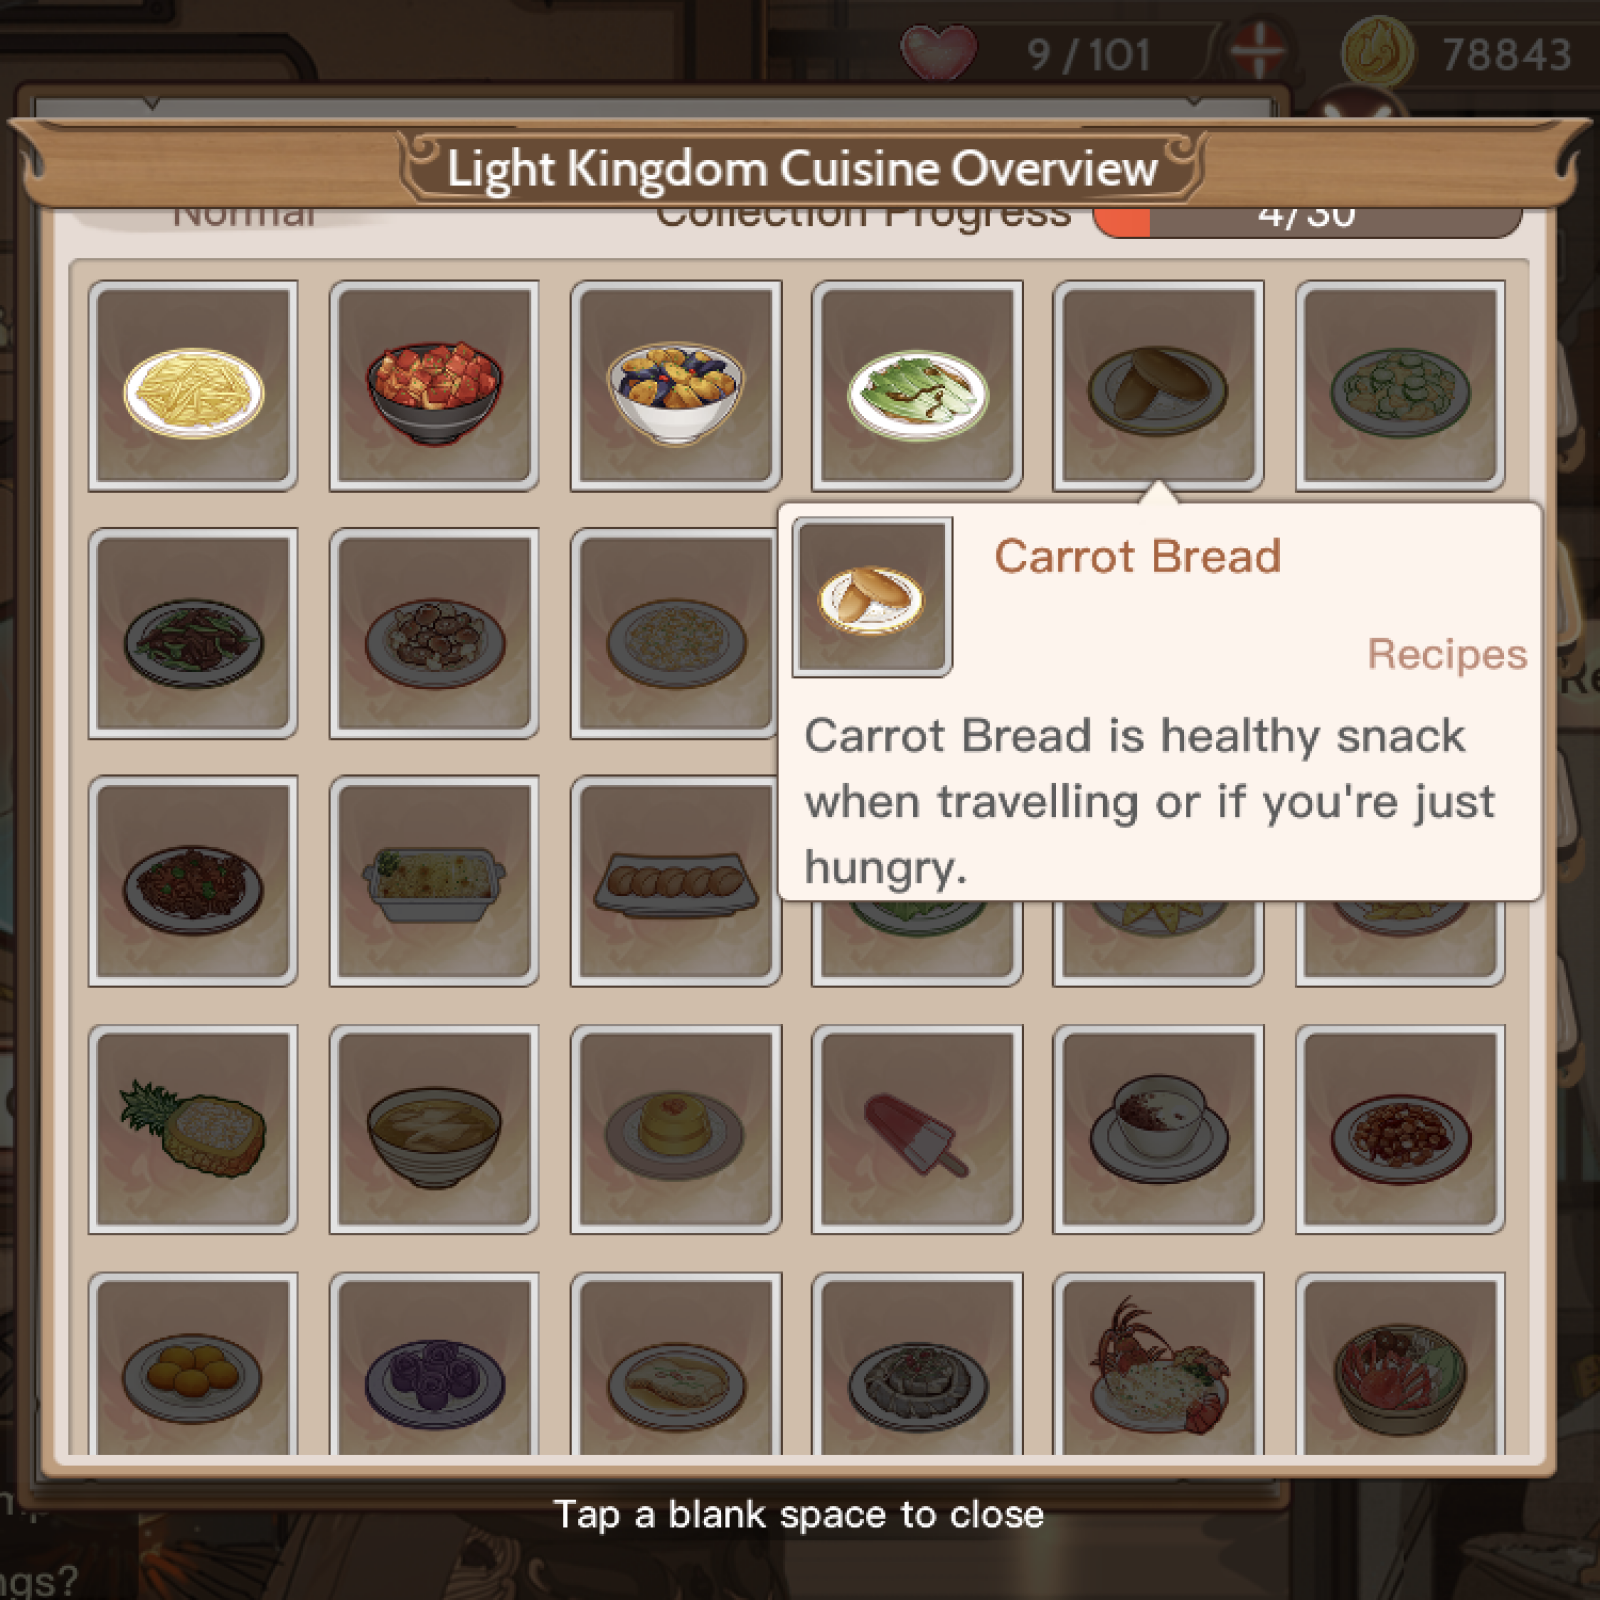 Food Fantasy' Recipes Guide: Complete List of Dishes and